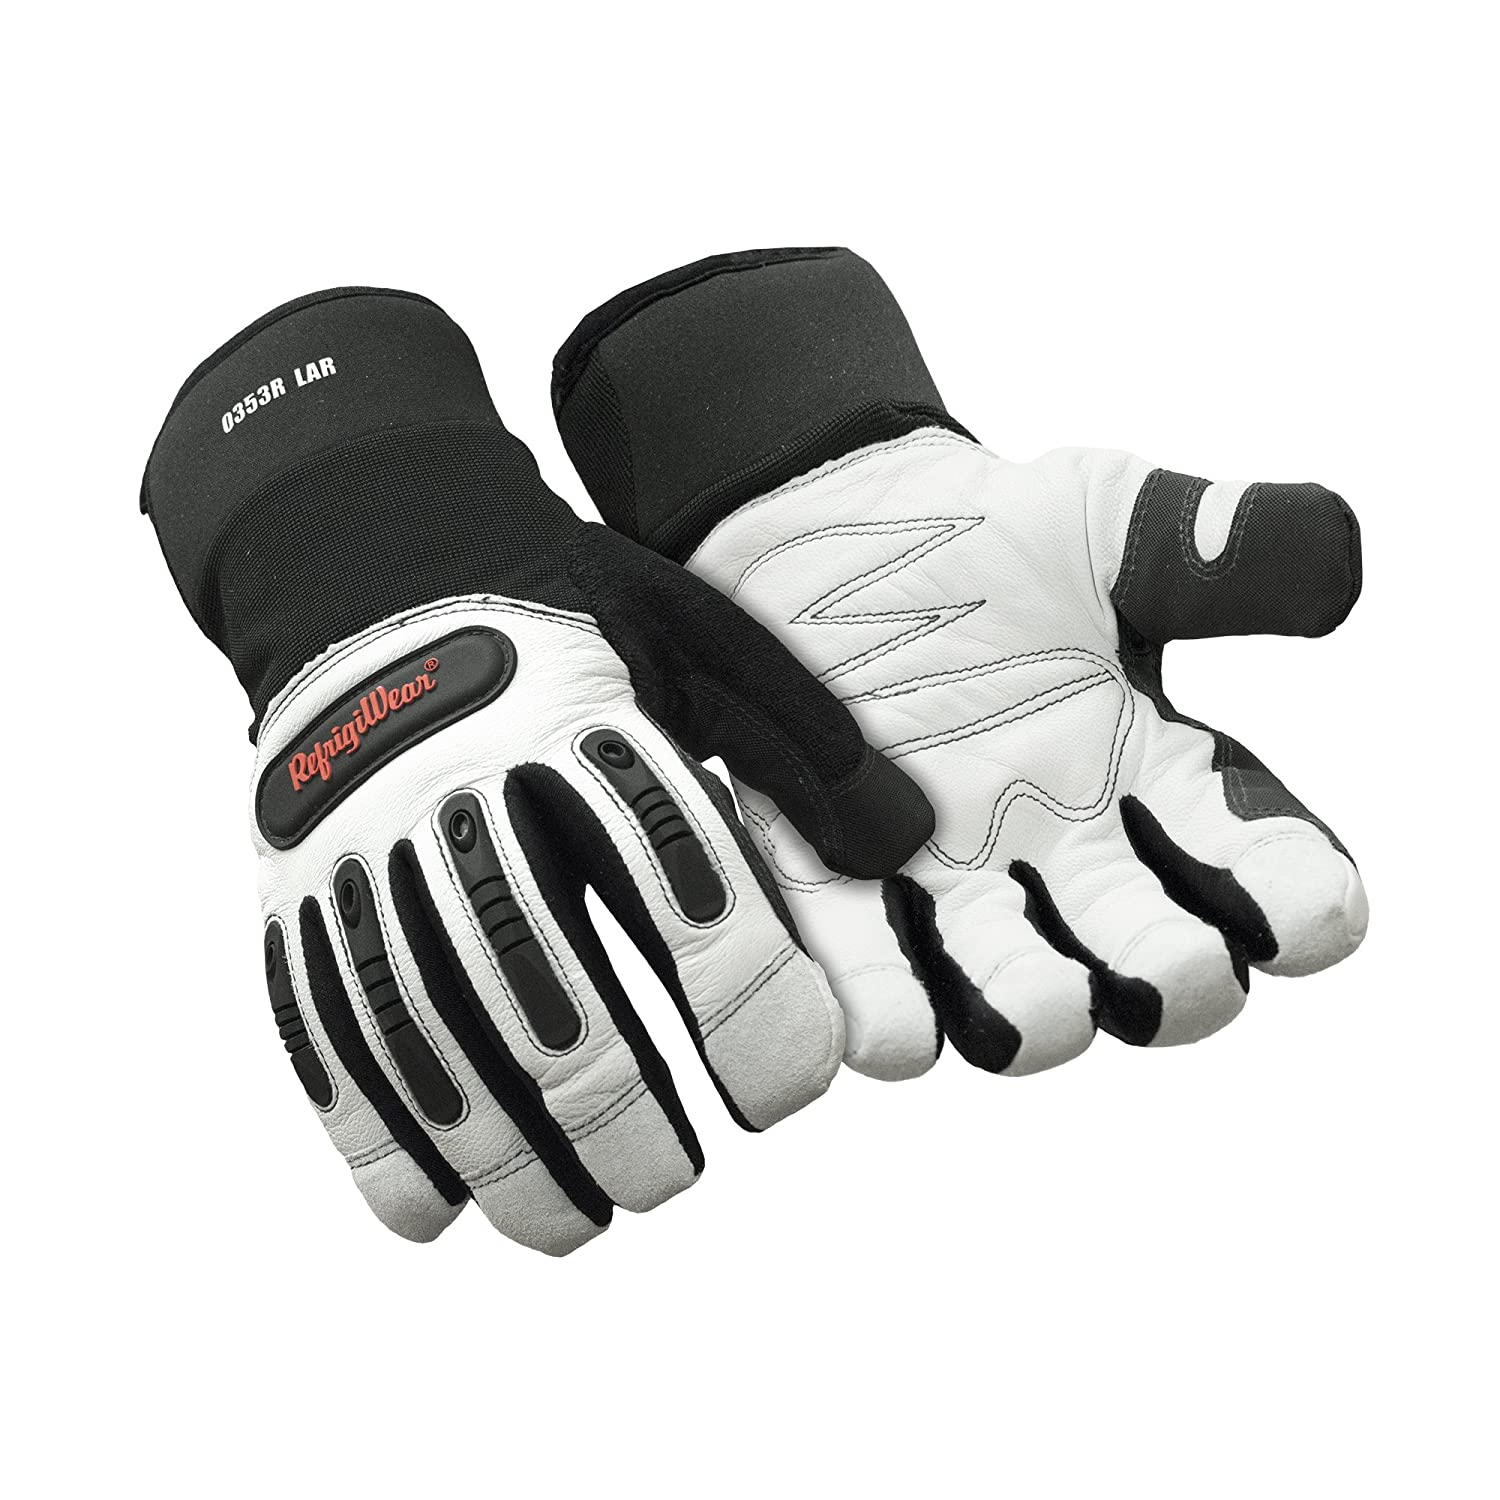 RefrigiWear Fiberfill Insulated Tricot Lined Ergo Goatskin Leather Gloves